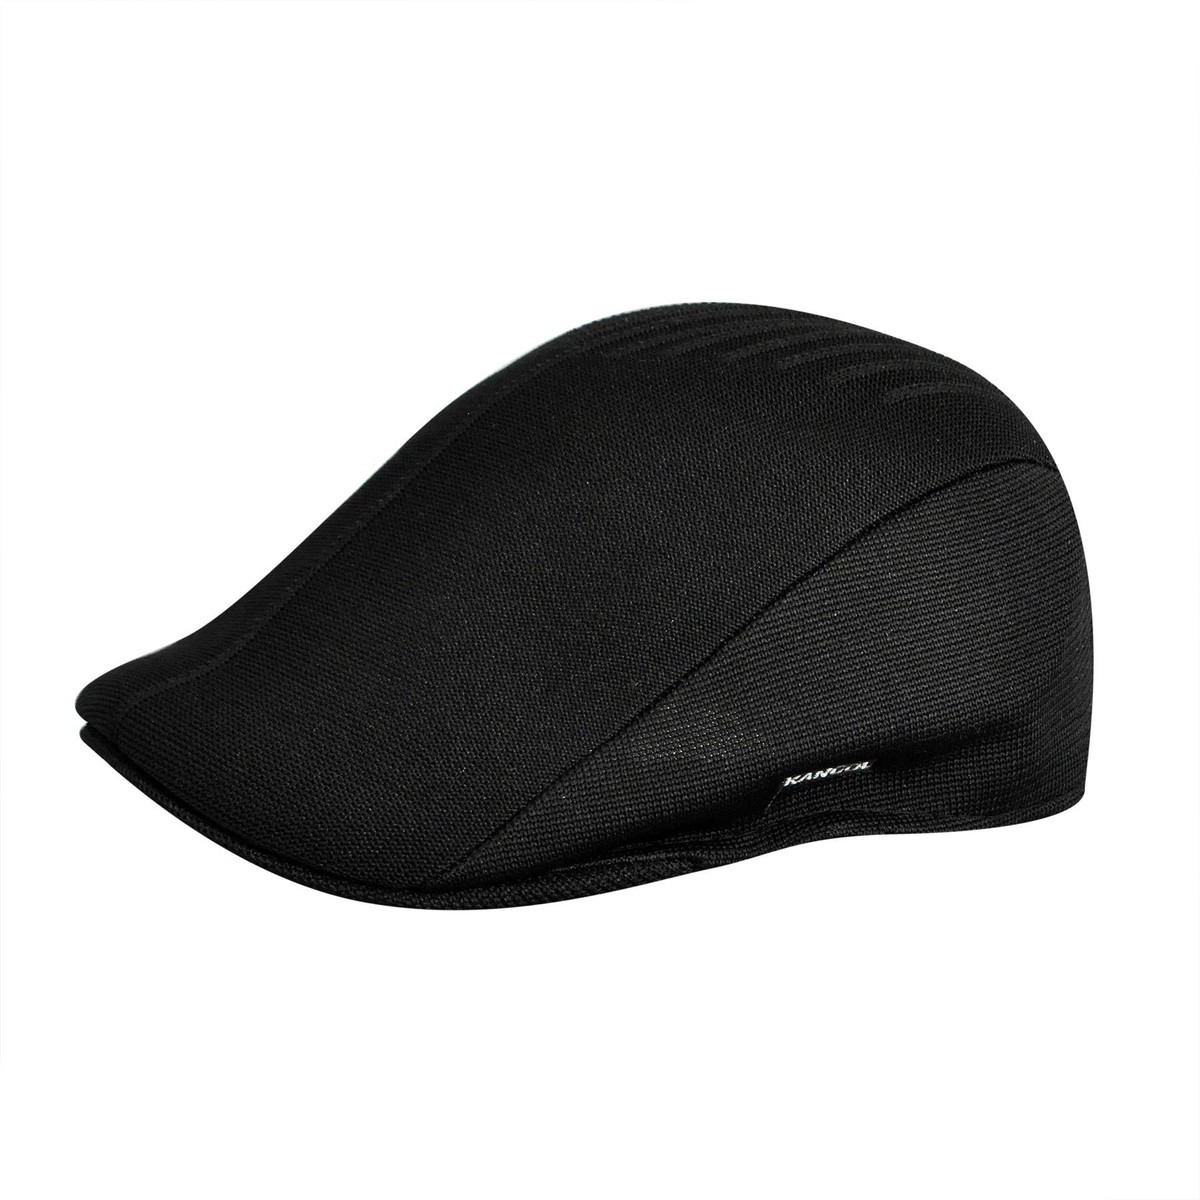 Kangol カンゴール Futurliner 507 BLACK Ivy Caps & Flat Caps 帽子 BLACK